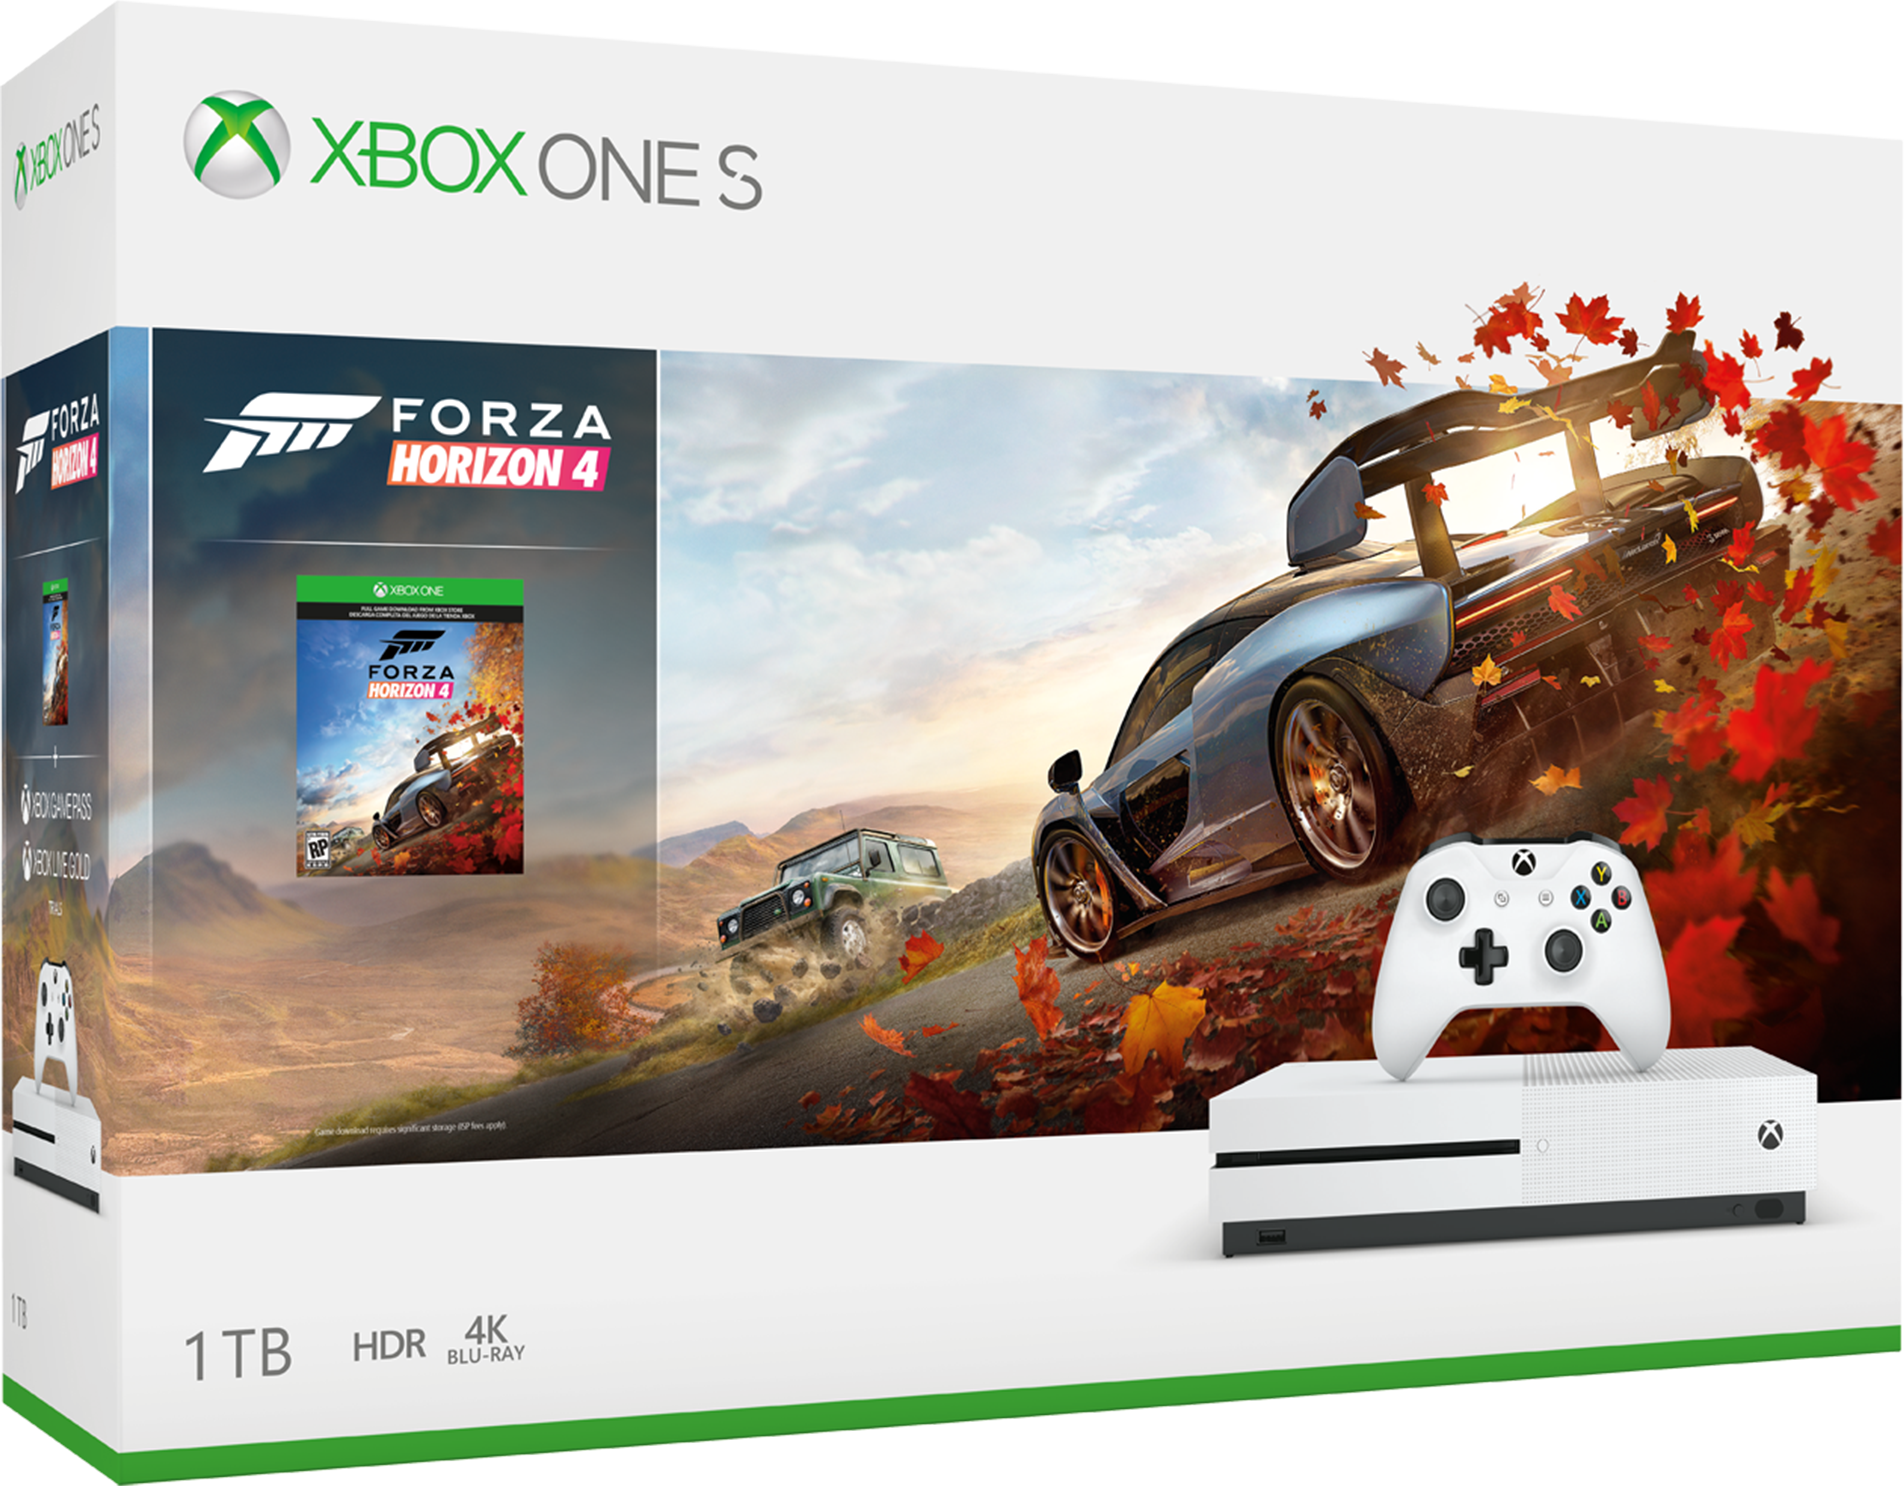 Xbox One S bundle with Forza Horizon 4 and extra game